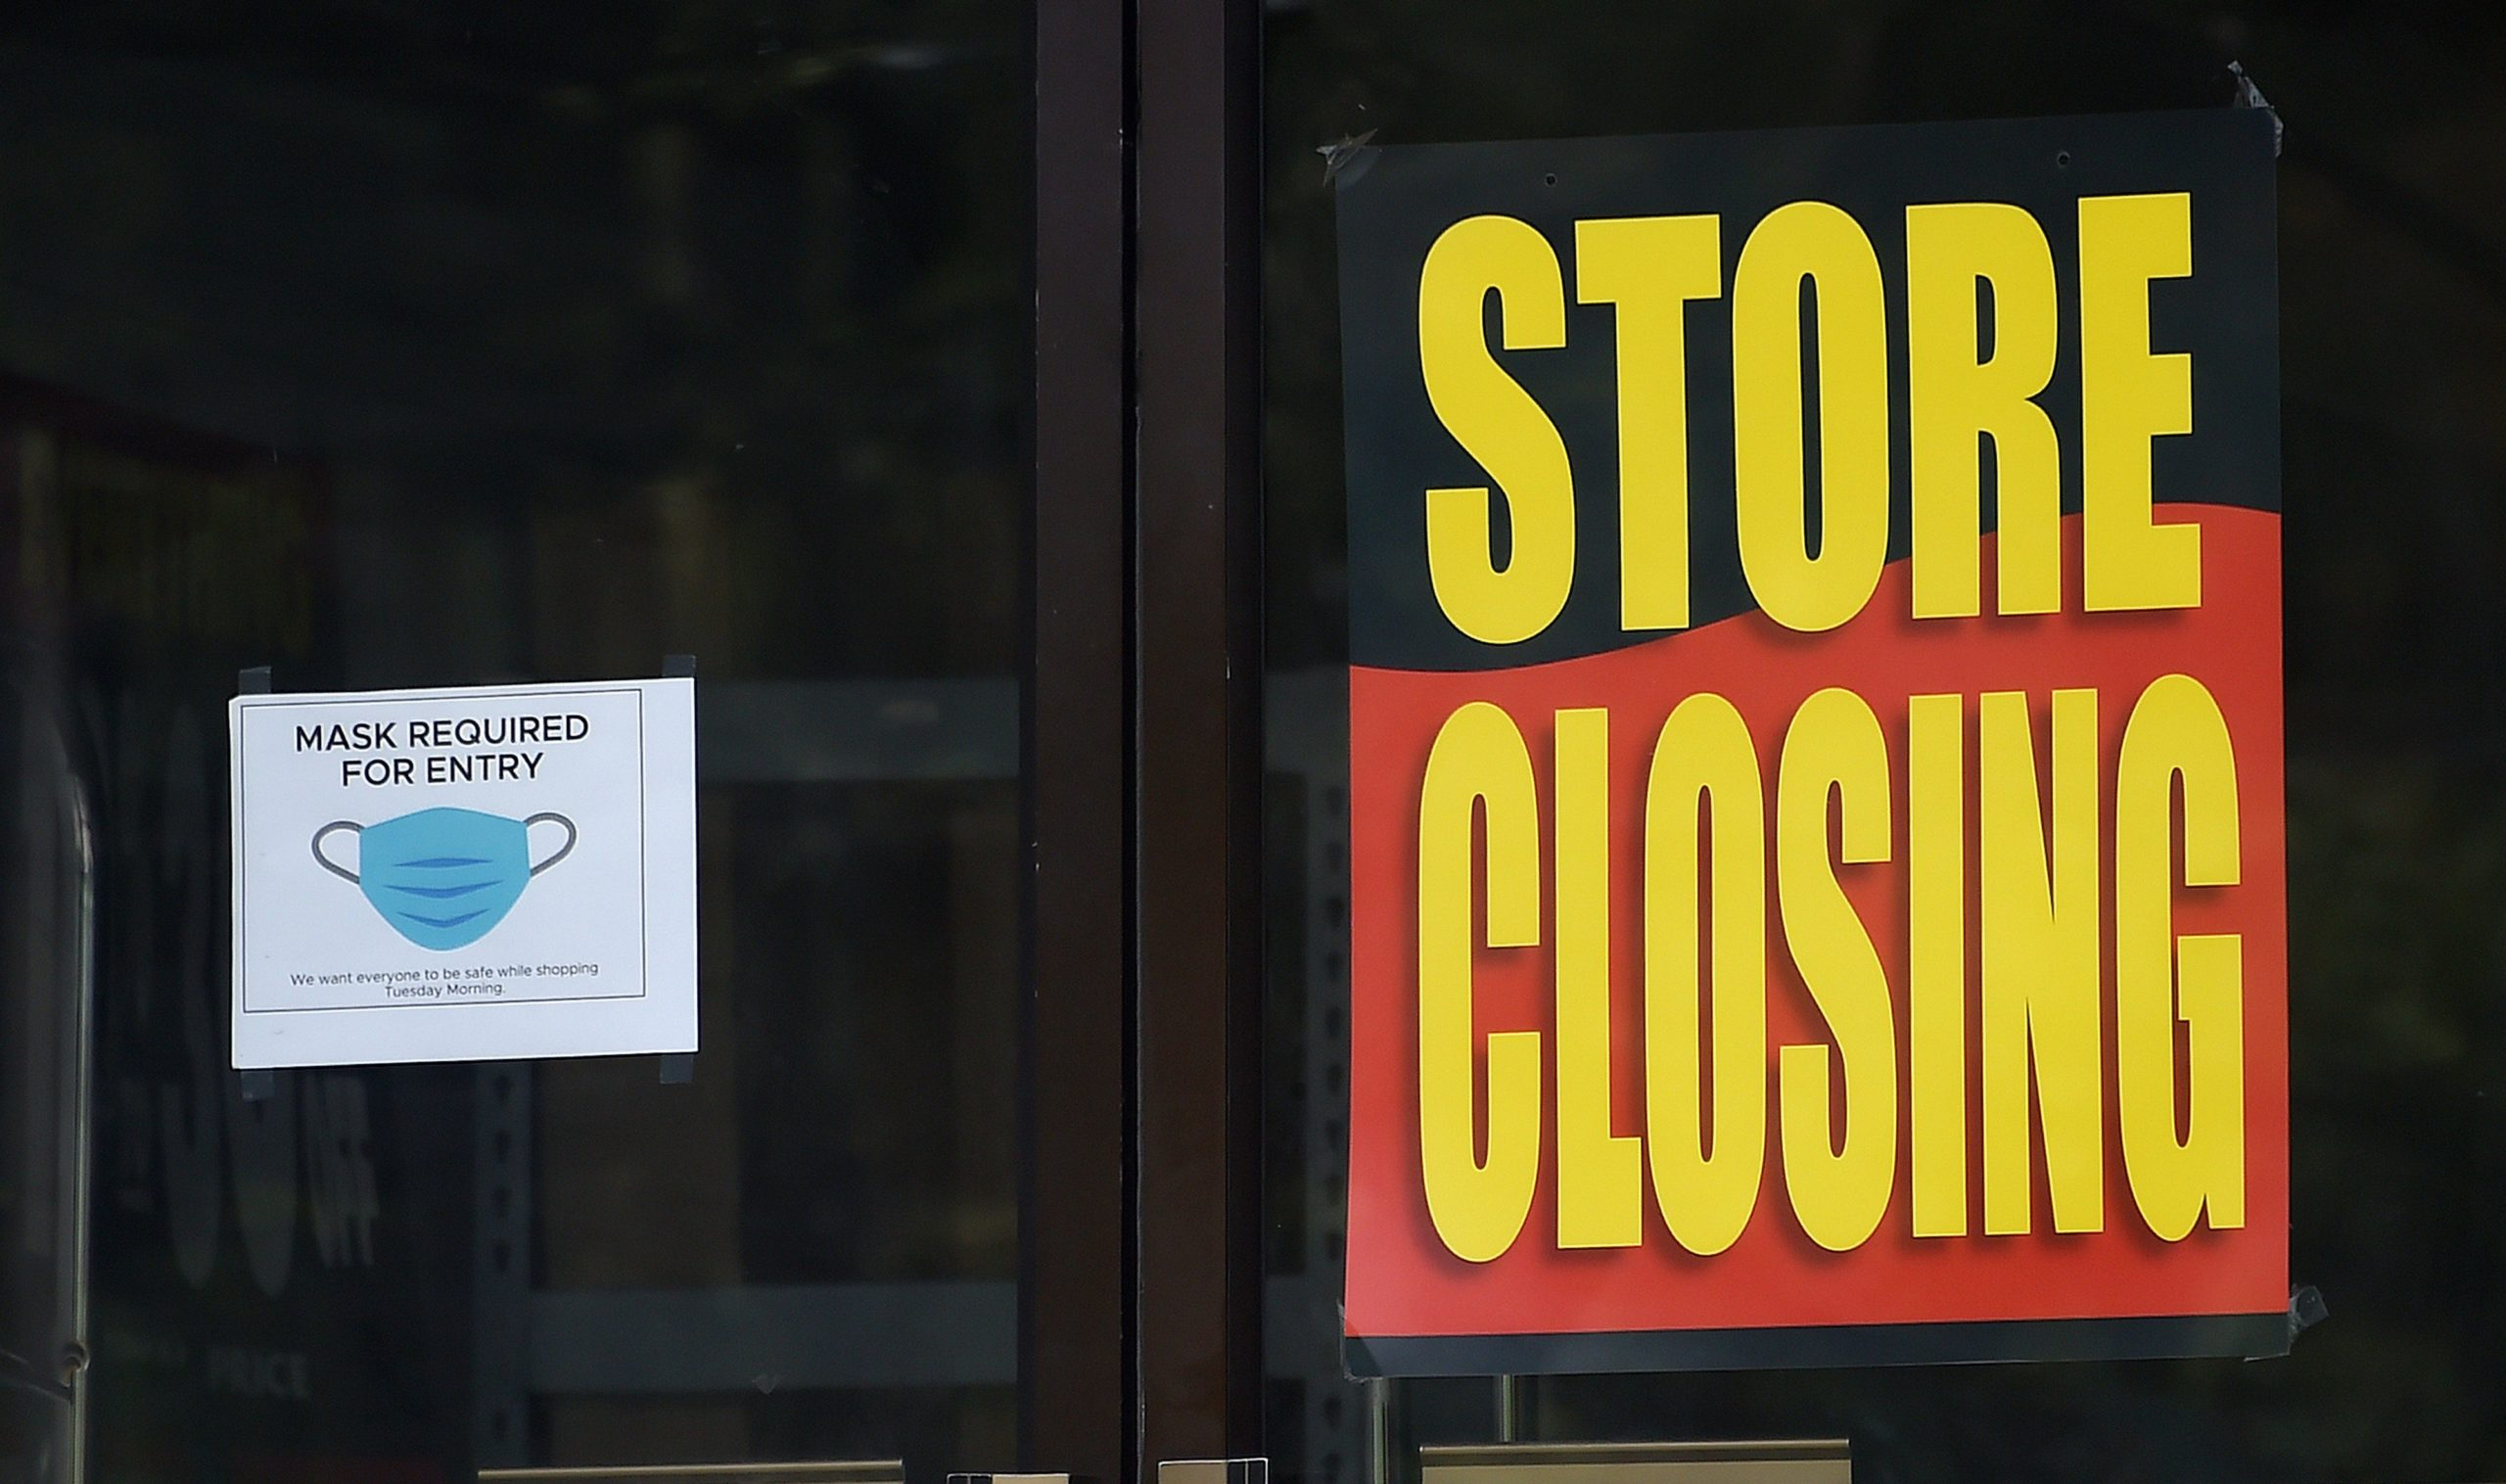 A store displays a sign before closing down permanently as more businesses feel the effects of stay-at-home orders amid the coronavirus pandemic, on June 16, 2020 in Arlington, Virginia. (Photo by Olivier DOULIERY / AFP) (Photo by OLIVIER DOULIERY/AFP via Getty Images)